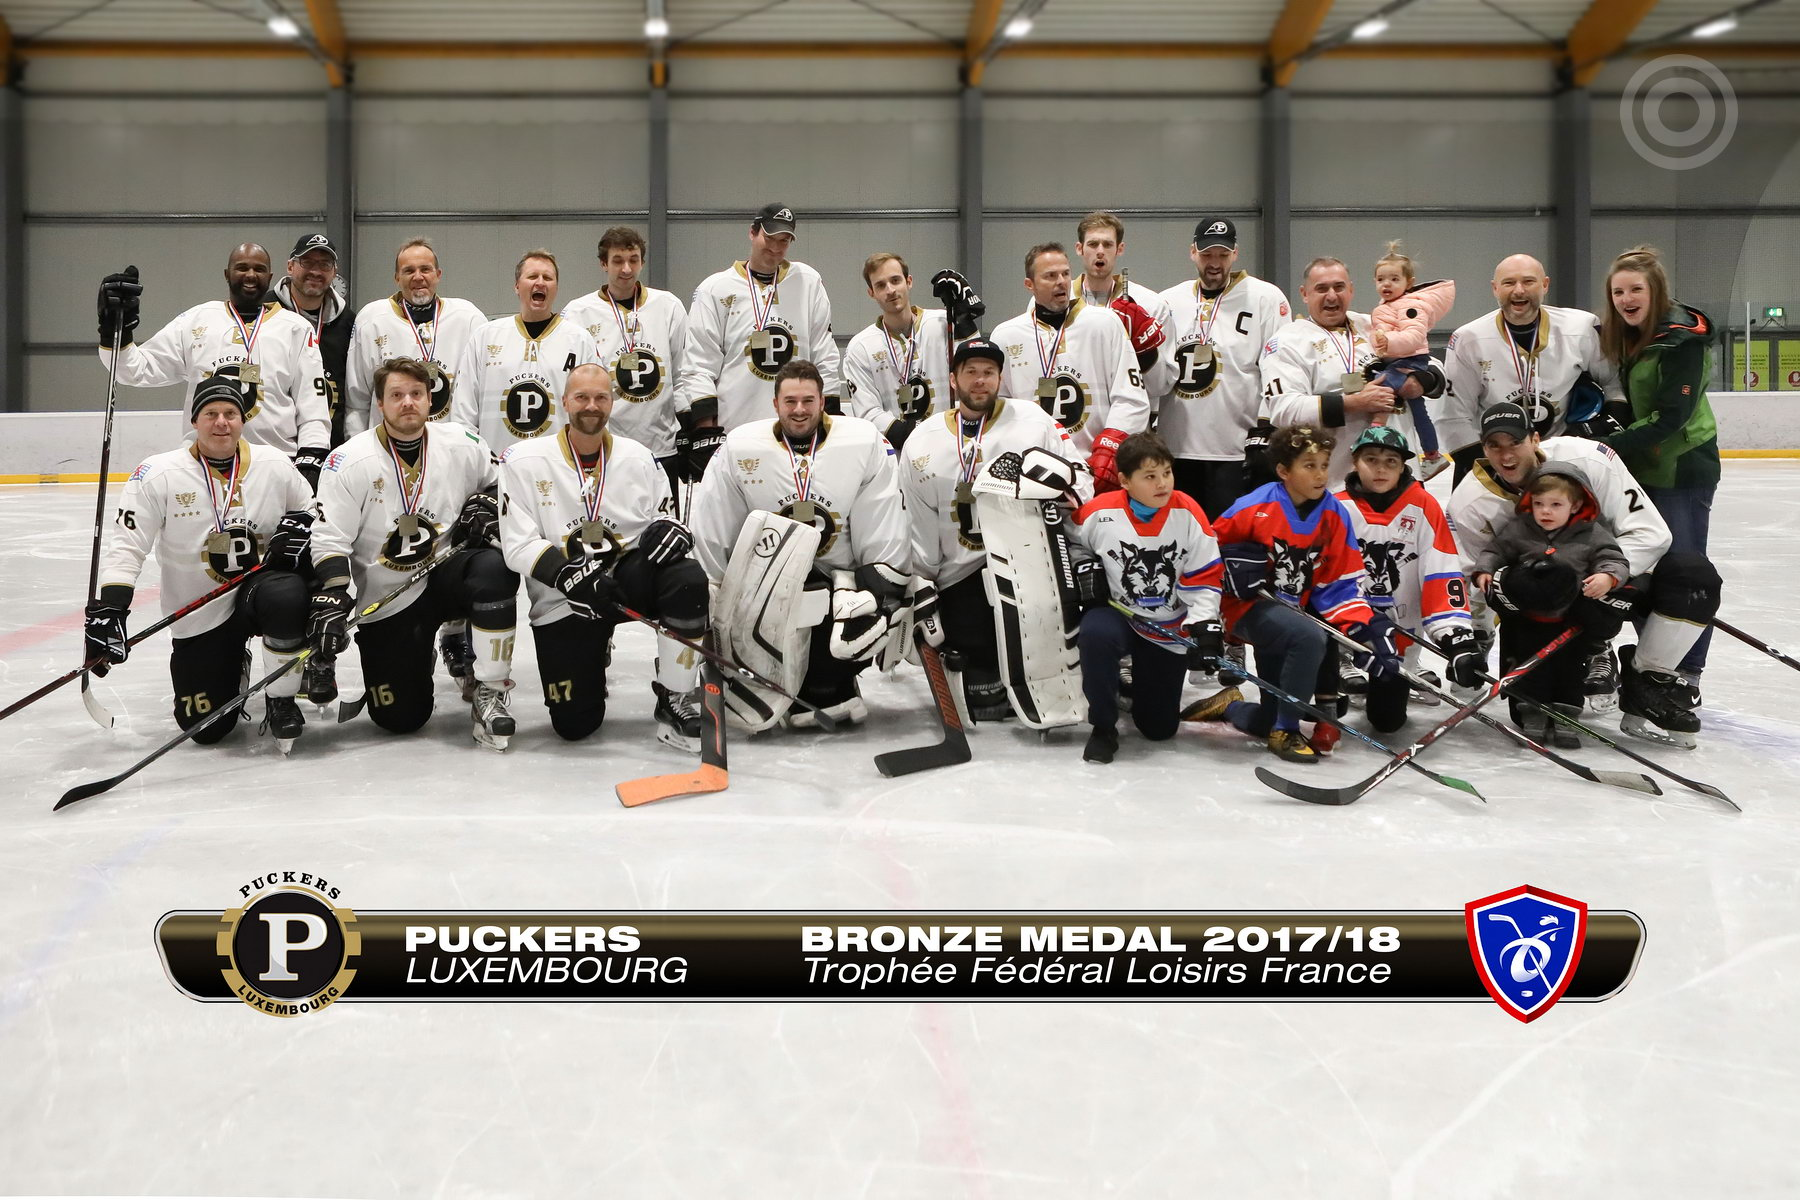 Puckers take league lead after key win against new rival Colmar 1